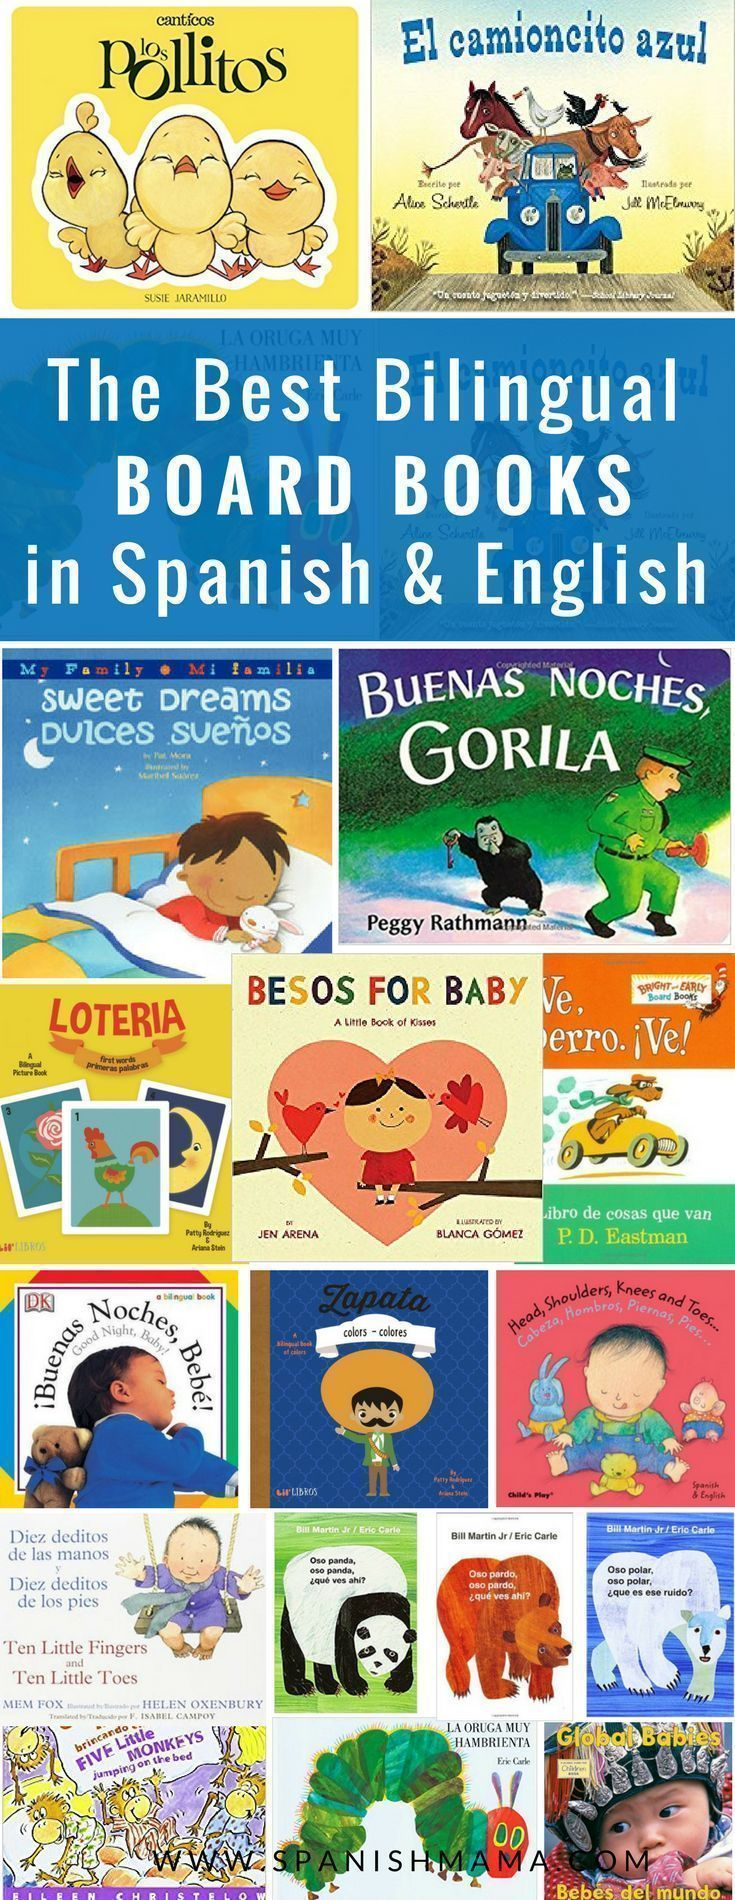 Spanish board books for babies and toddlers. Find the best bilingual books for little hands! #spanishfortoddlers